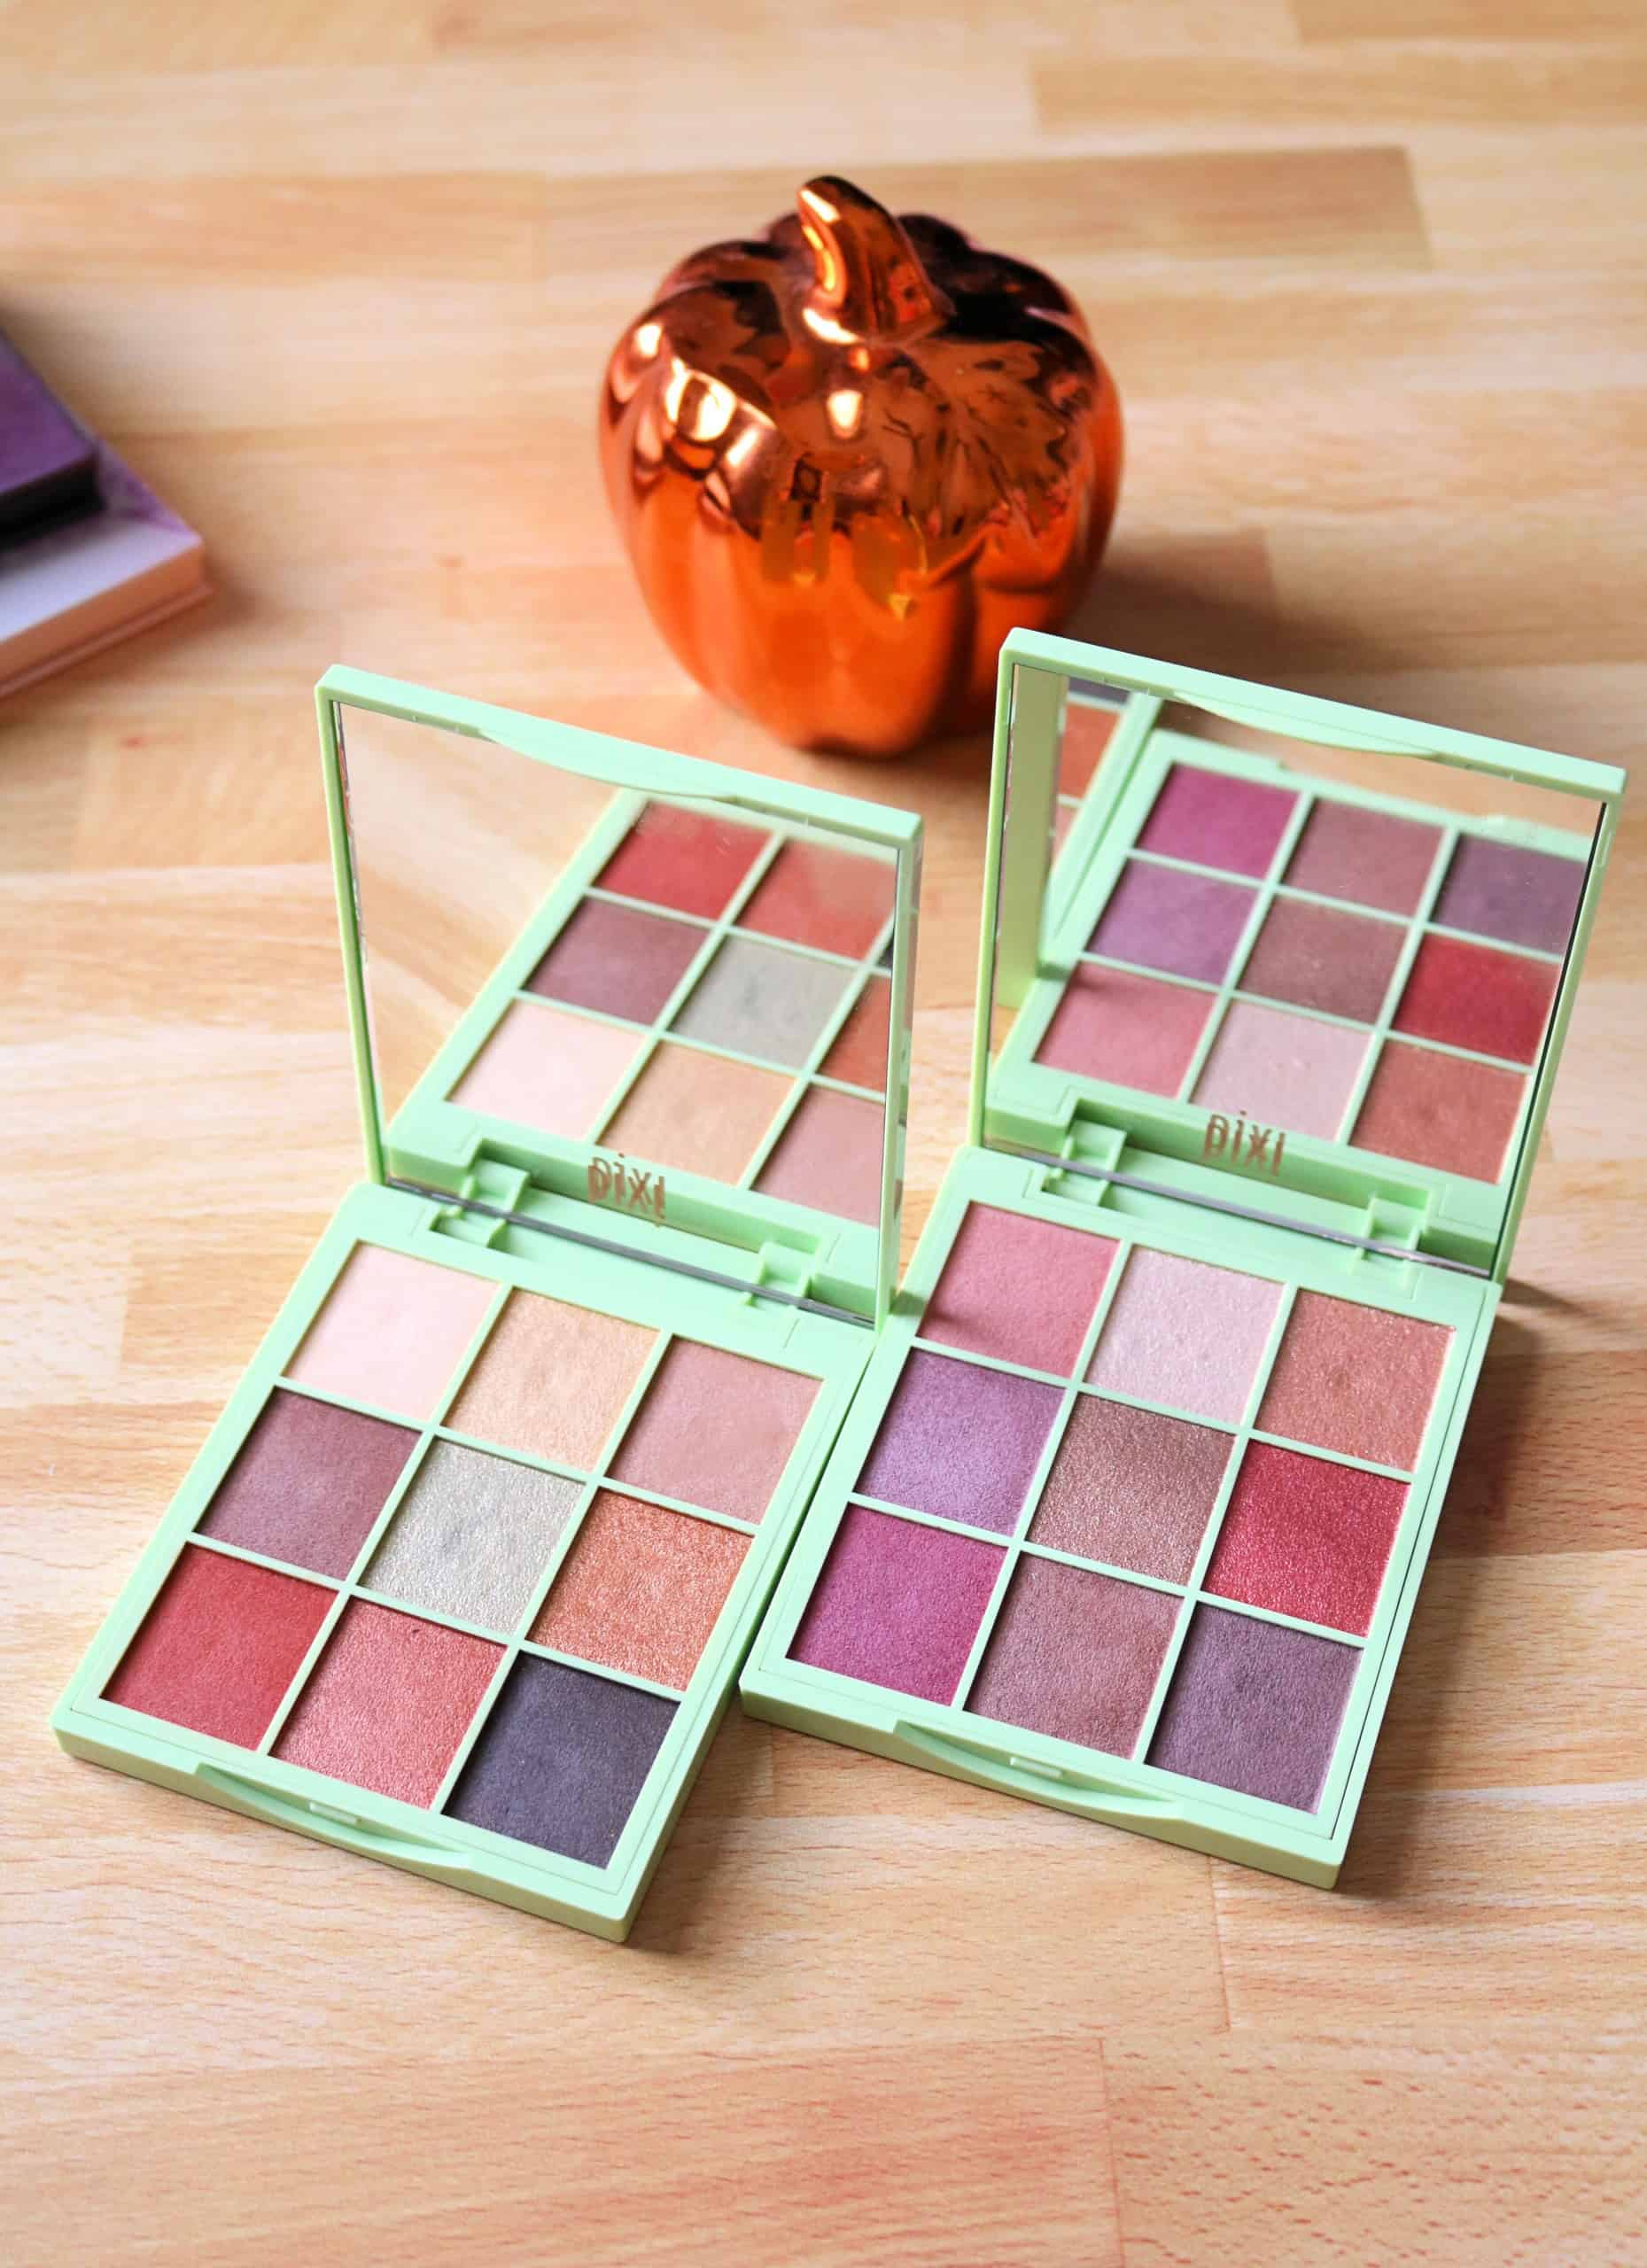 Looking for the best Fall eyeshadow palettes under $30? Check out these 6 Gorgeous and Affordable Fall Eyeshadow Palettes full of beautiful warm shades that are perfect for creating Fall eye makeup looks. #eyeshadows #eyeshadowpalettes #fallmakeup #drugstoremakeup #makeup